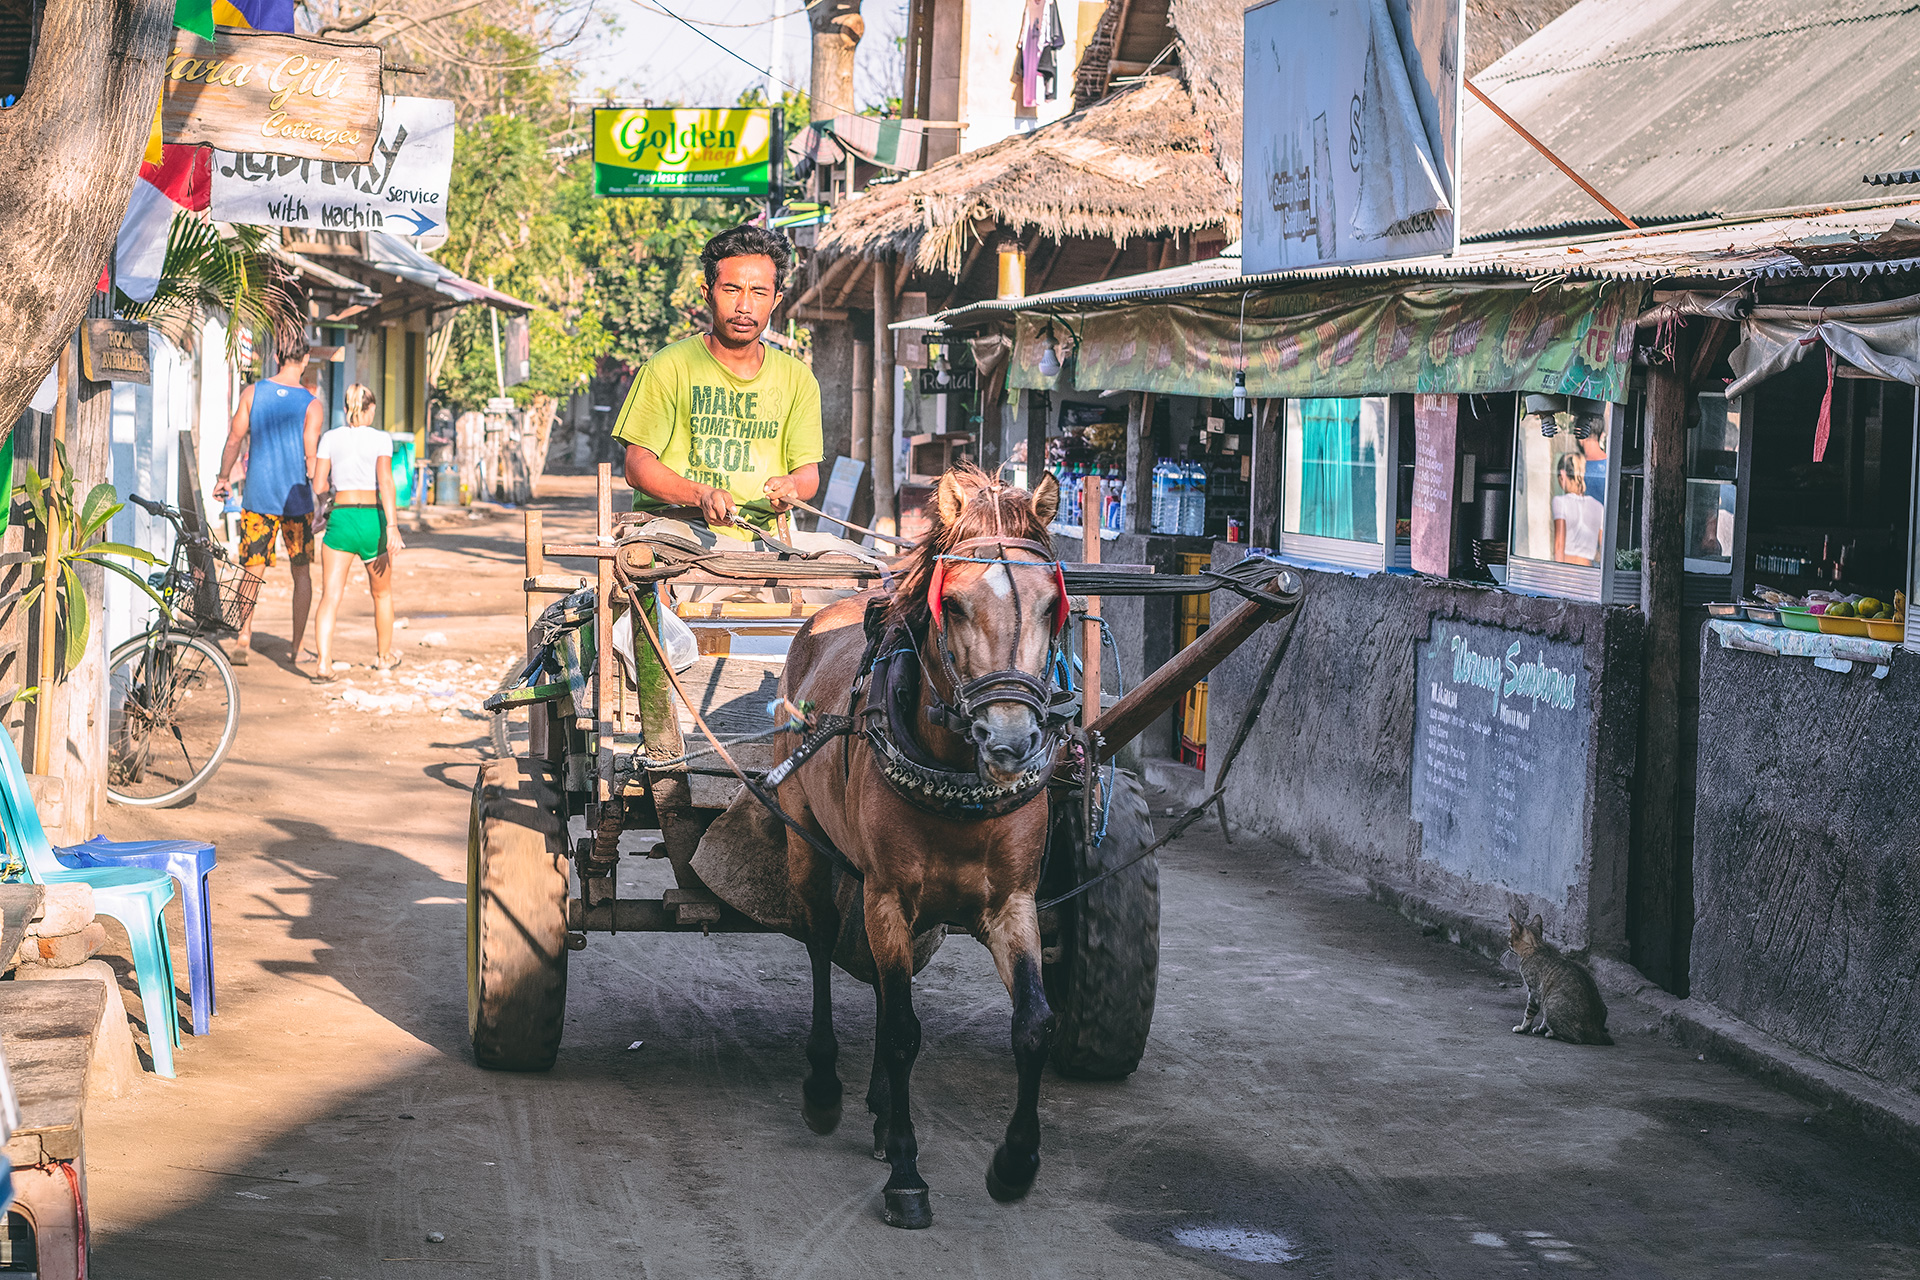 Horse Carriage, Gili Trawangan. Is it safe to travel to the Gili Islands after the 2018 earthquakes?